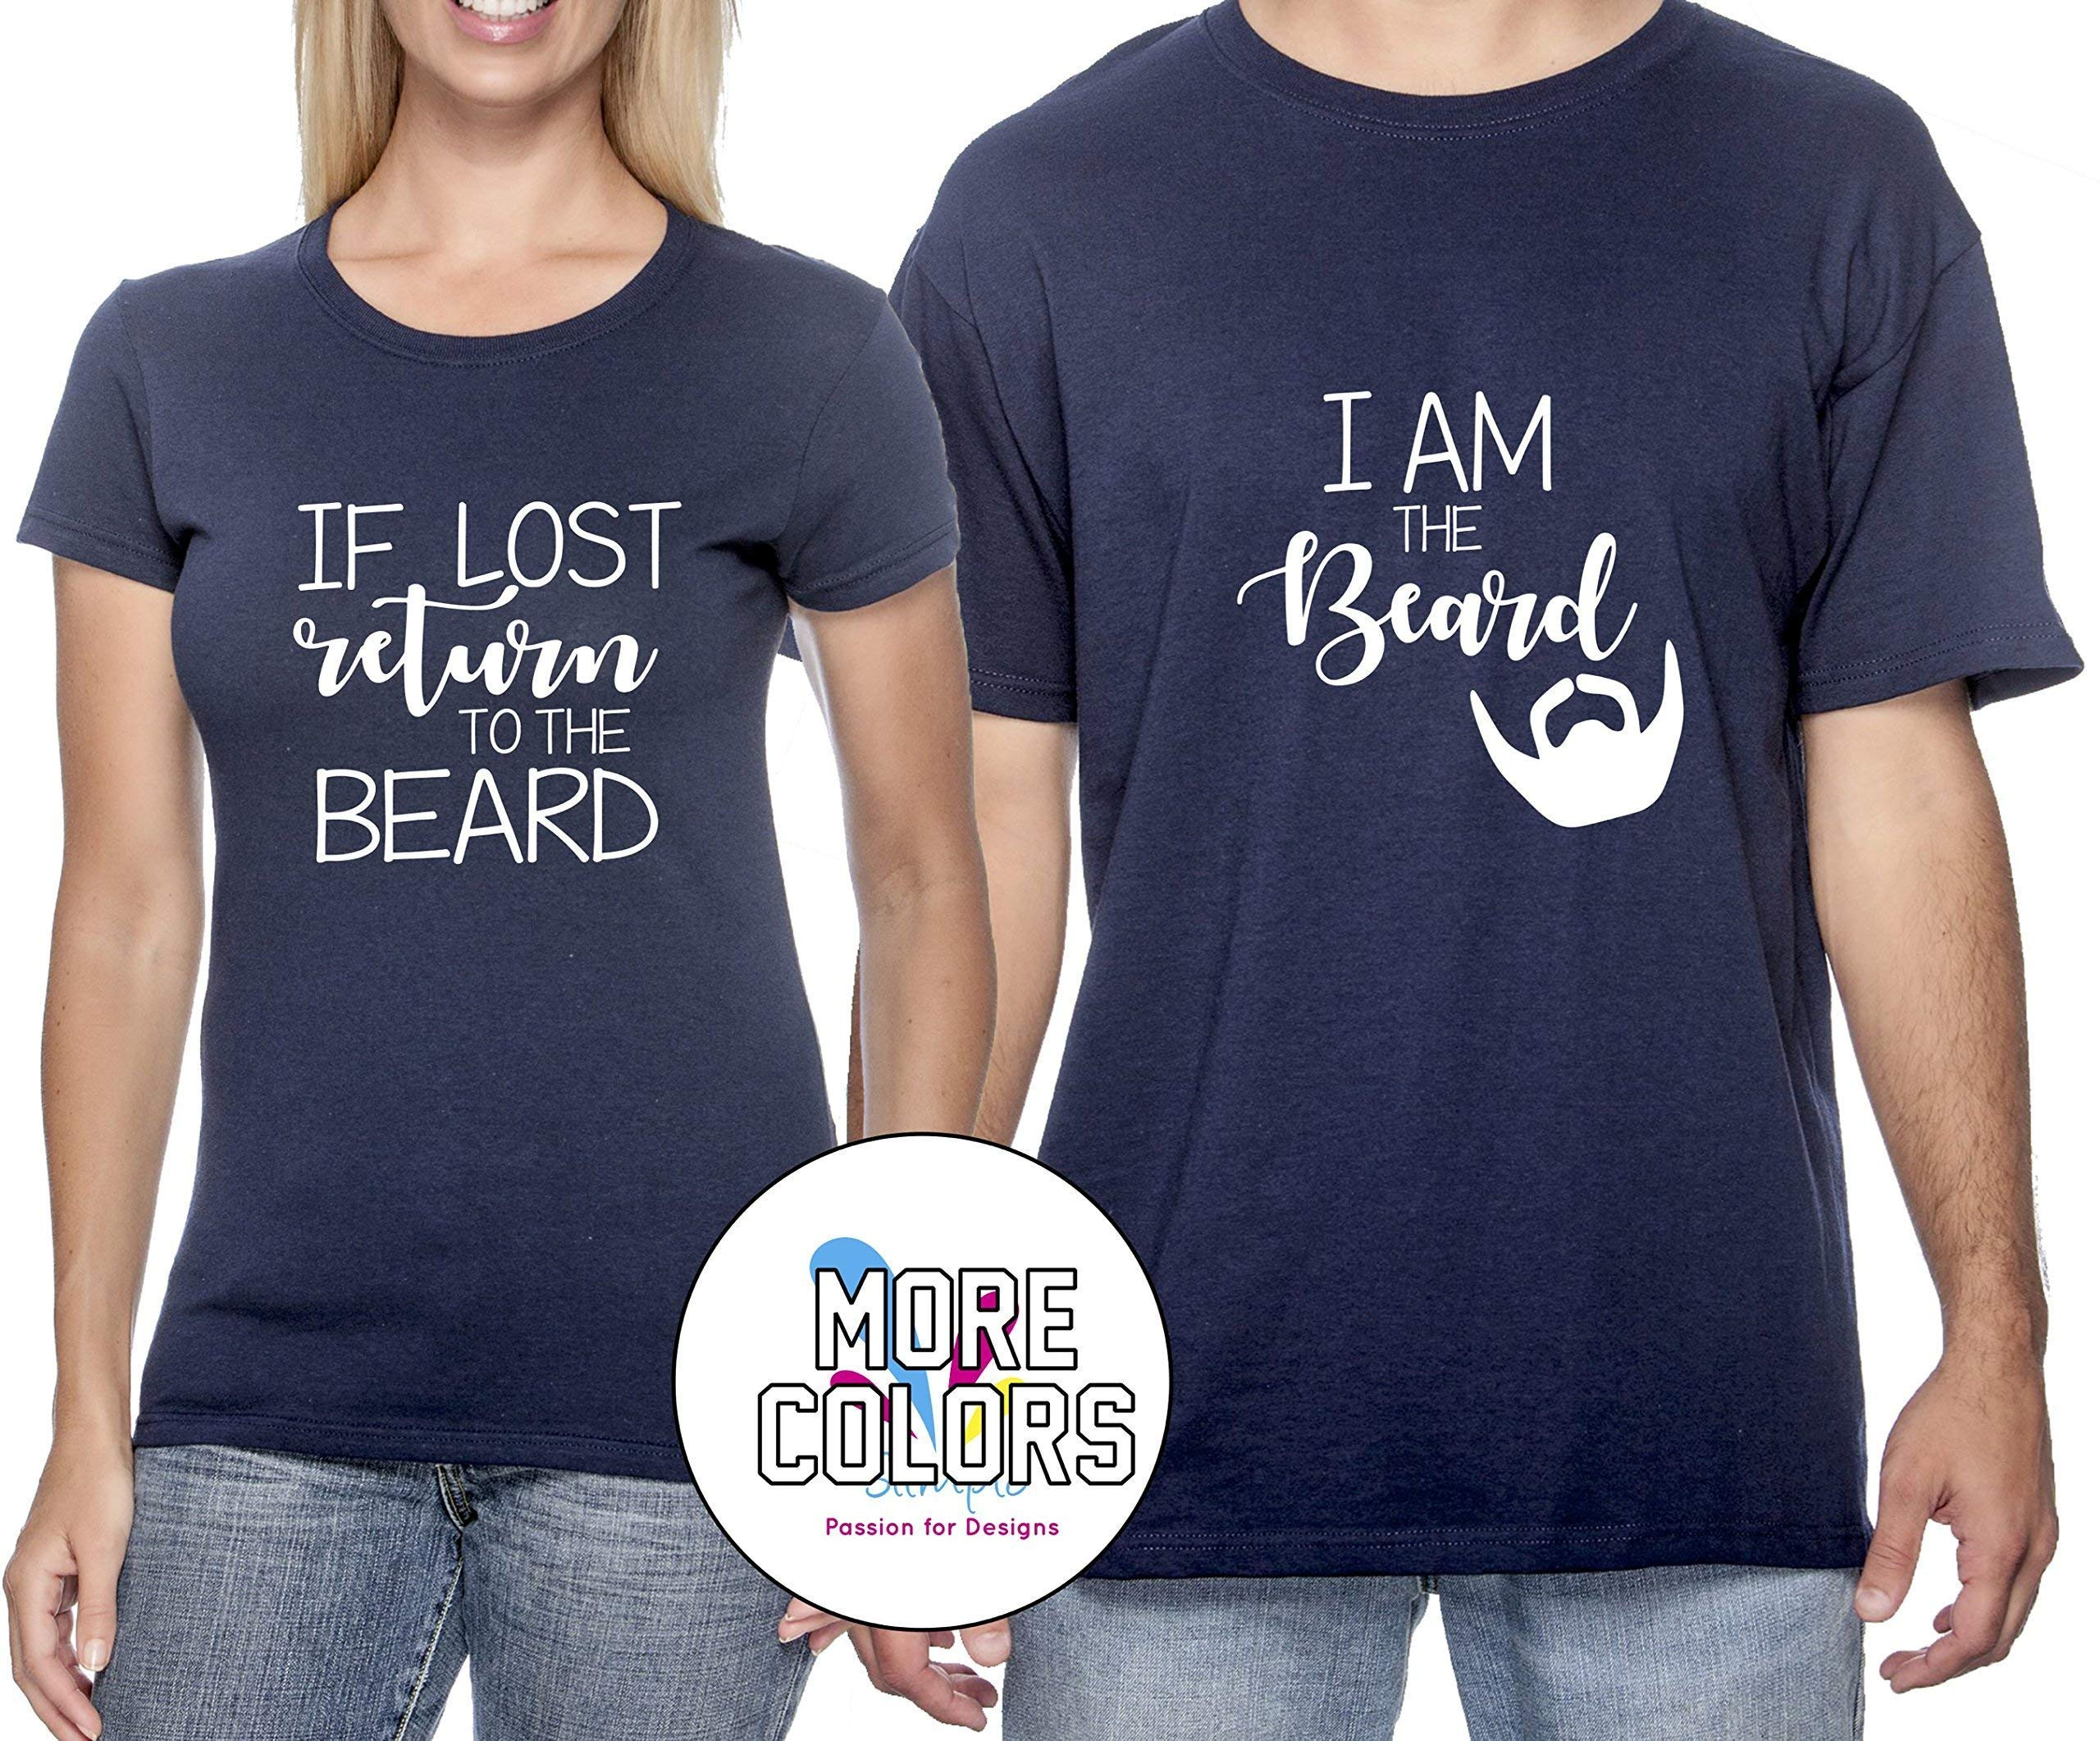 If Lost Please Return to the Beard Couple T Shirt - Funny Matching Couples T-Shirts - Graphic Tees TShirt Humor Shirt -HoneyMoon